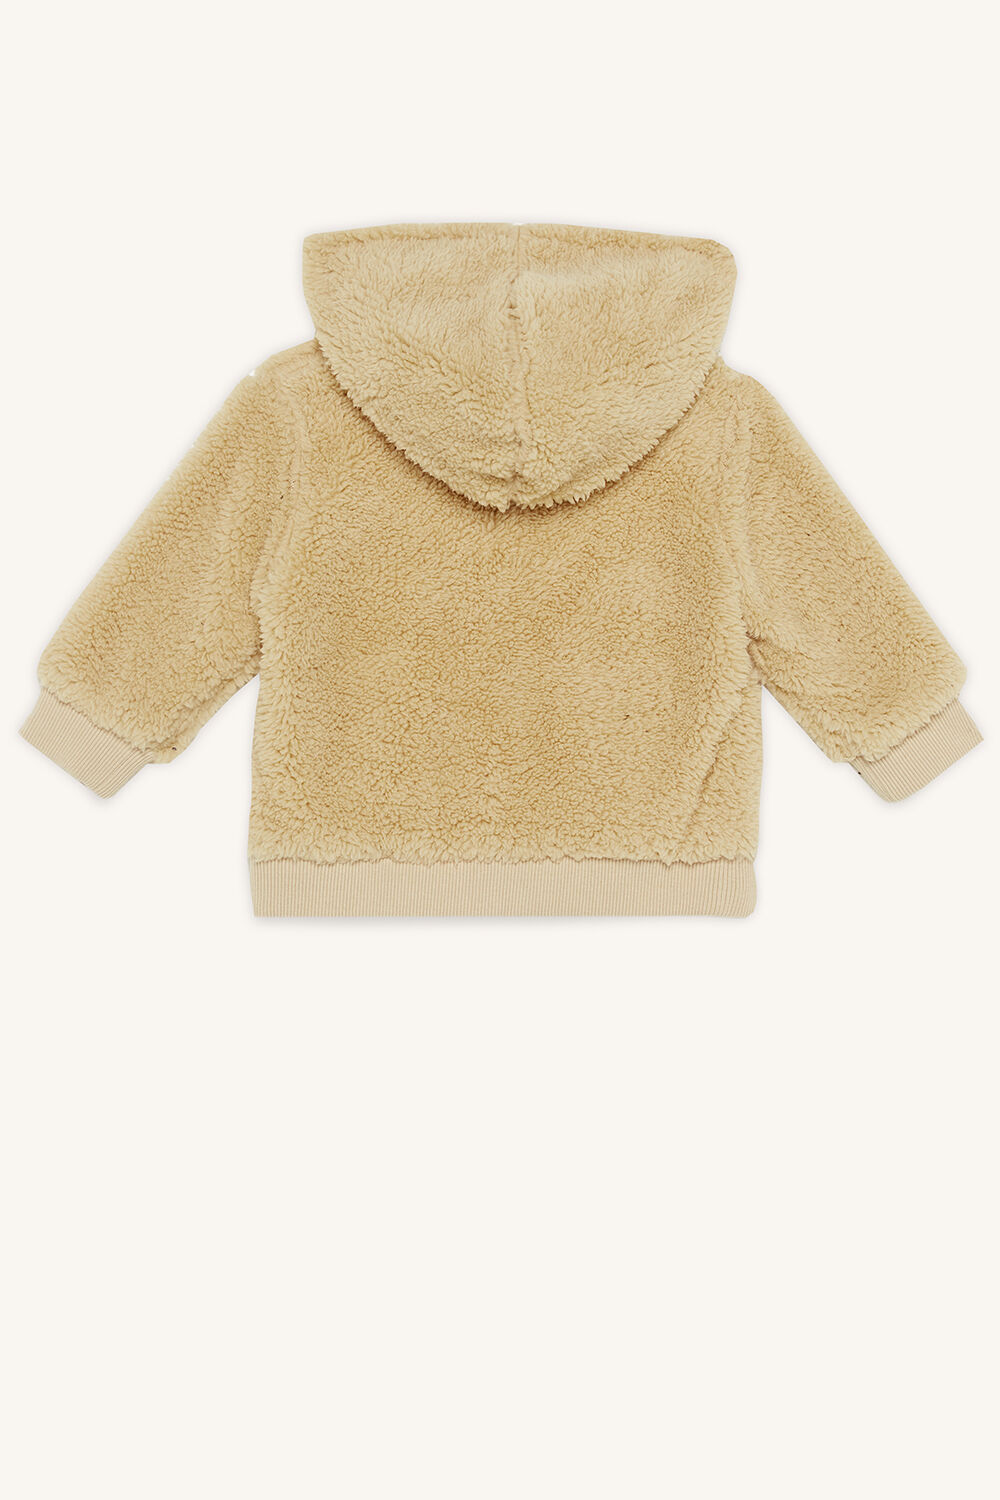 MASON HOODED TOP in colour TAN